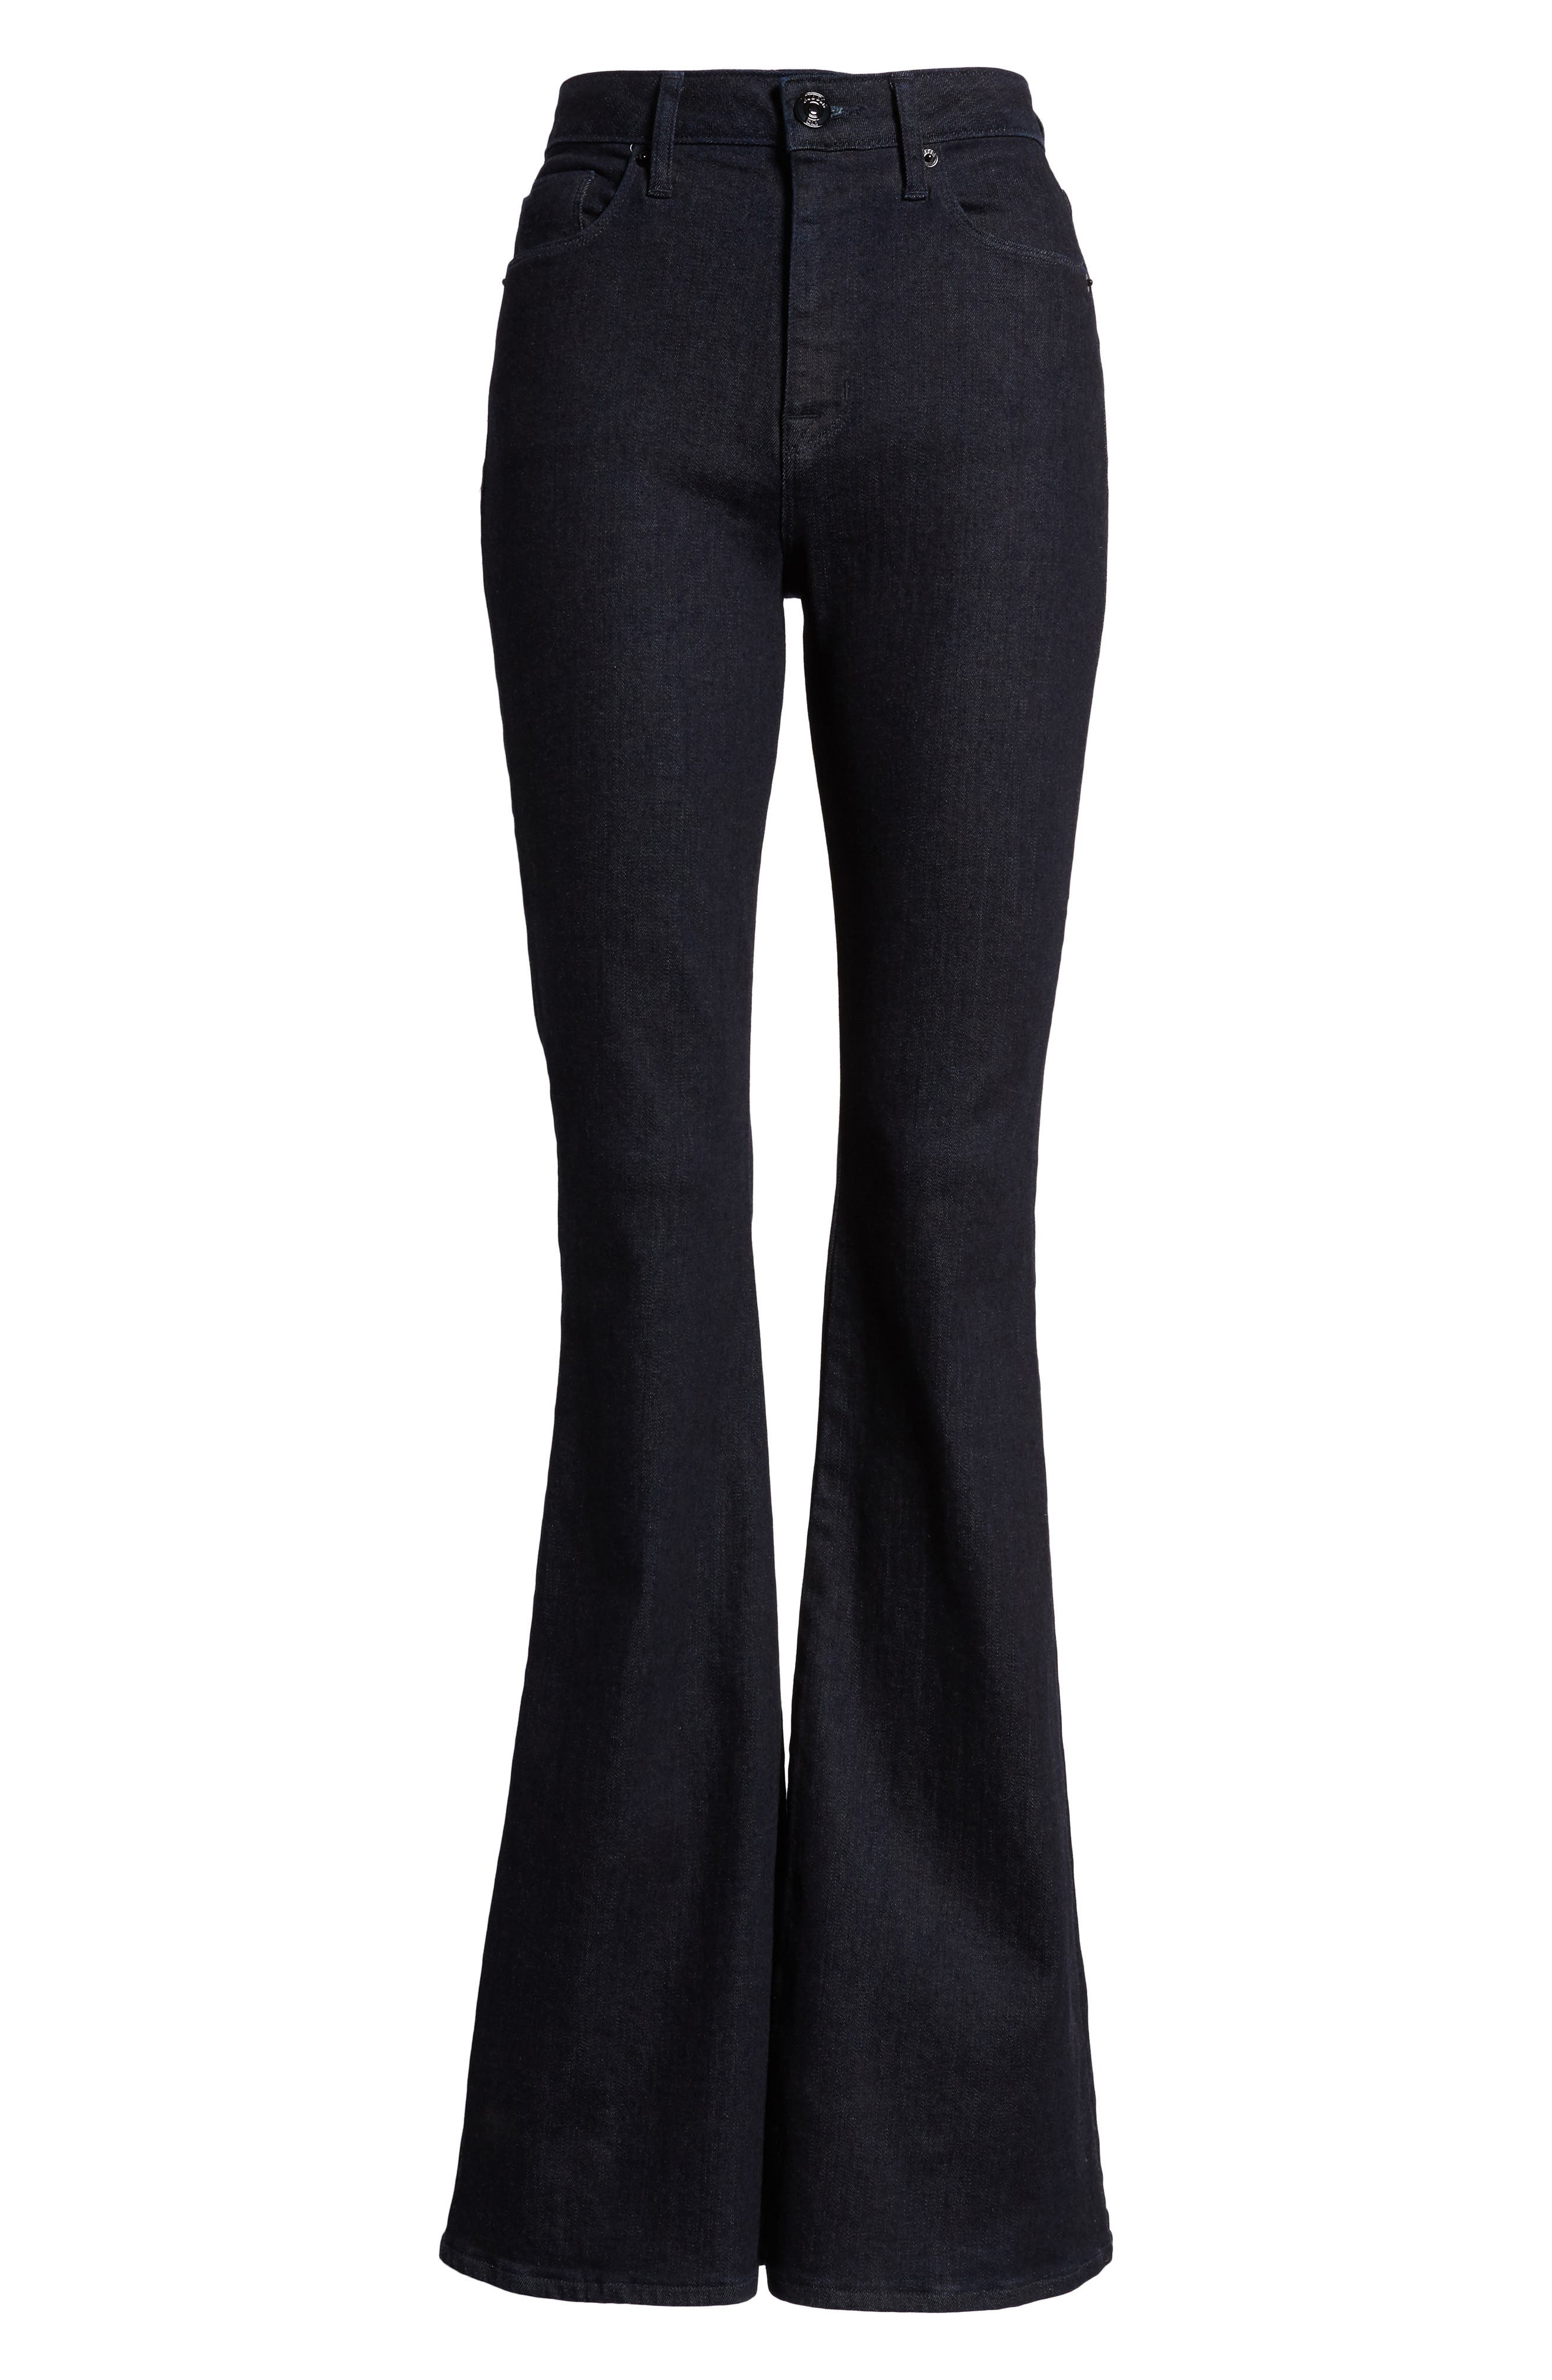 Holly High Waist Flare Jeans,                             Alternate thumbnail 7, color,                             Infuse